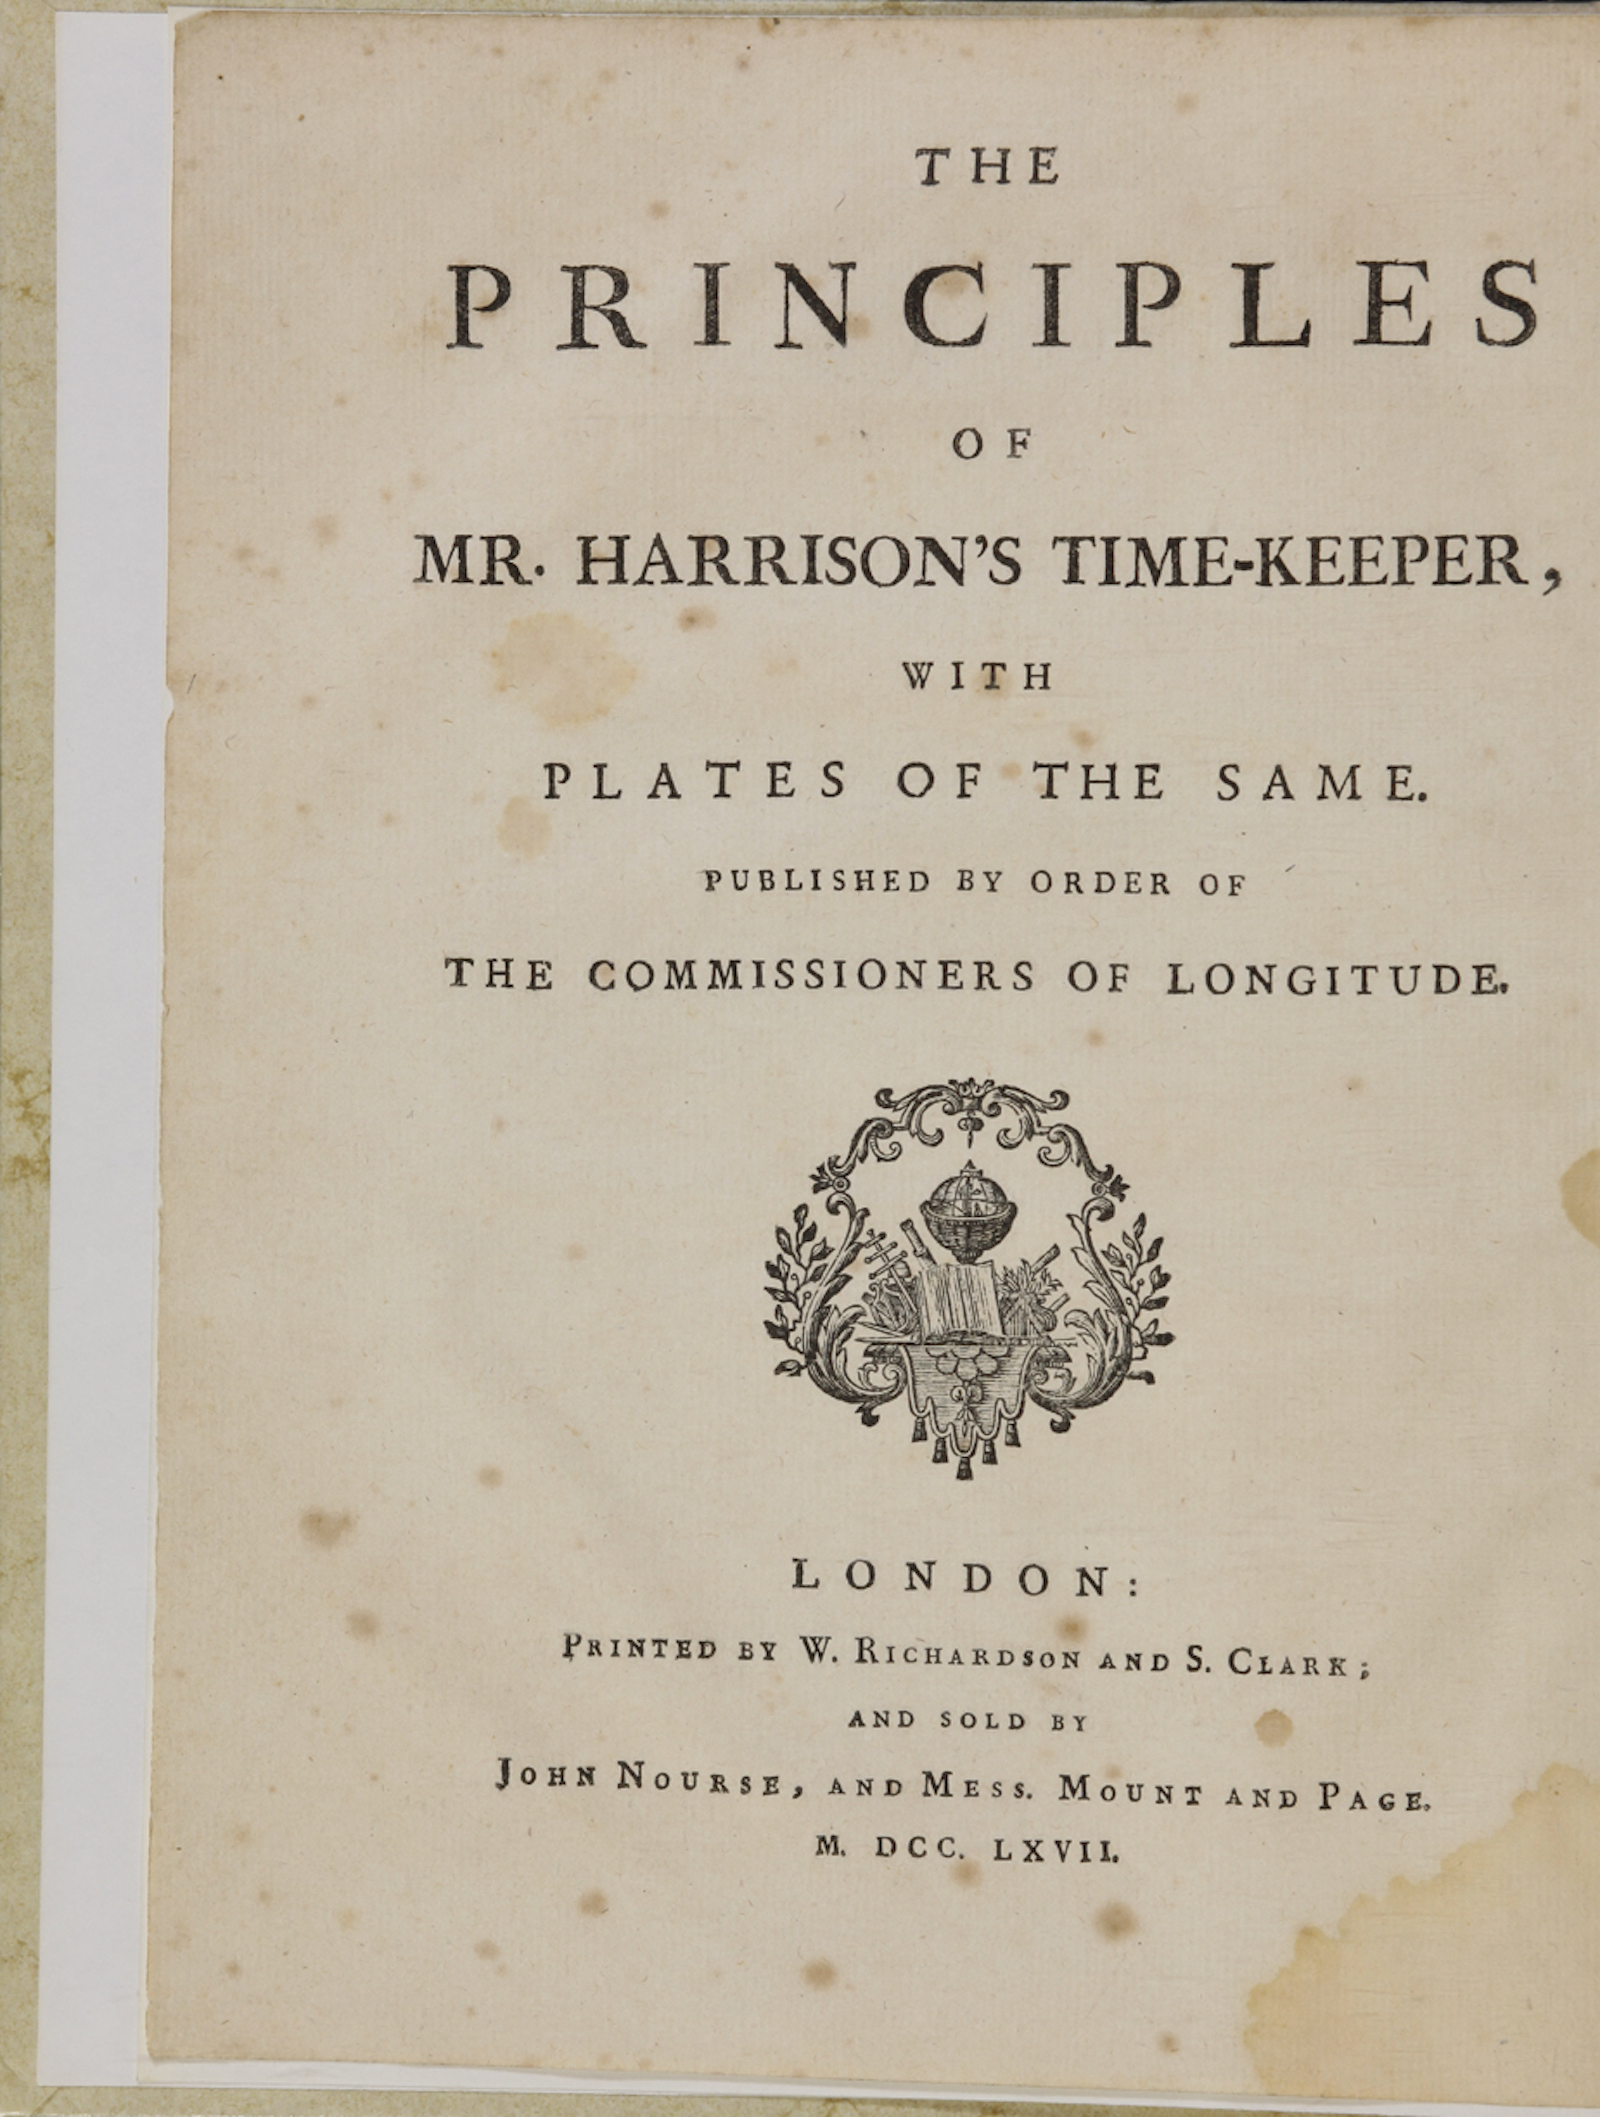 Principles of Mr. Harrison's Timekeeper (French edition). PBA1740.